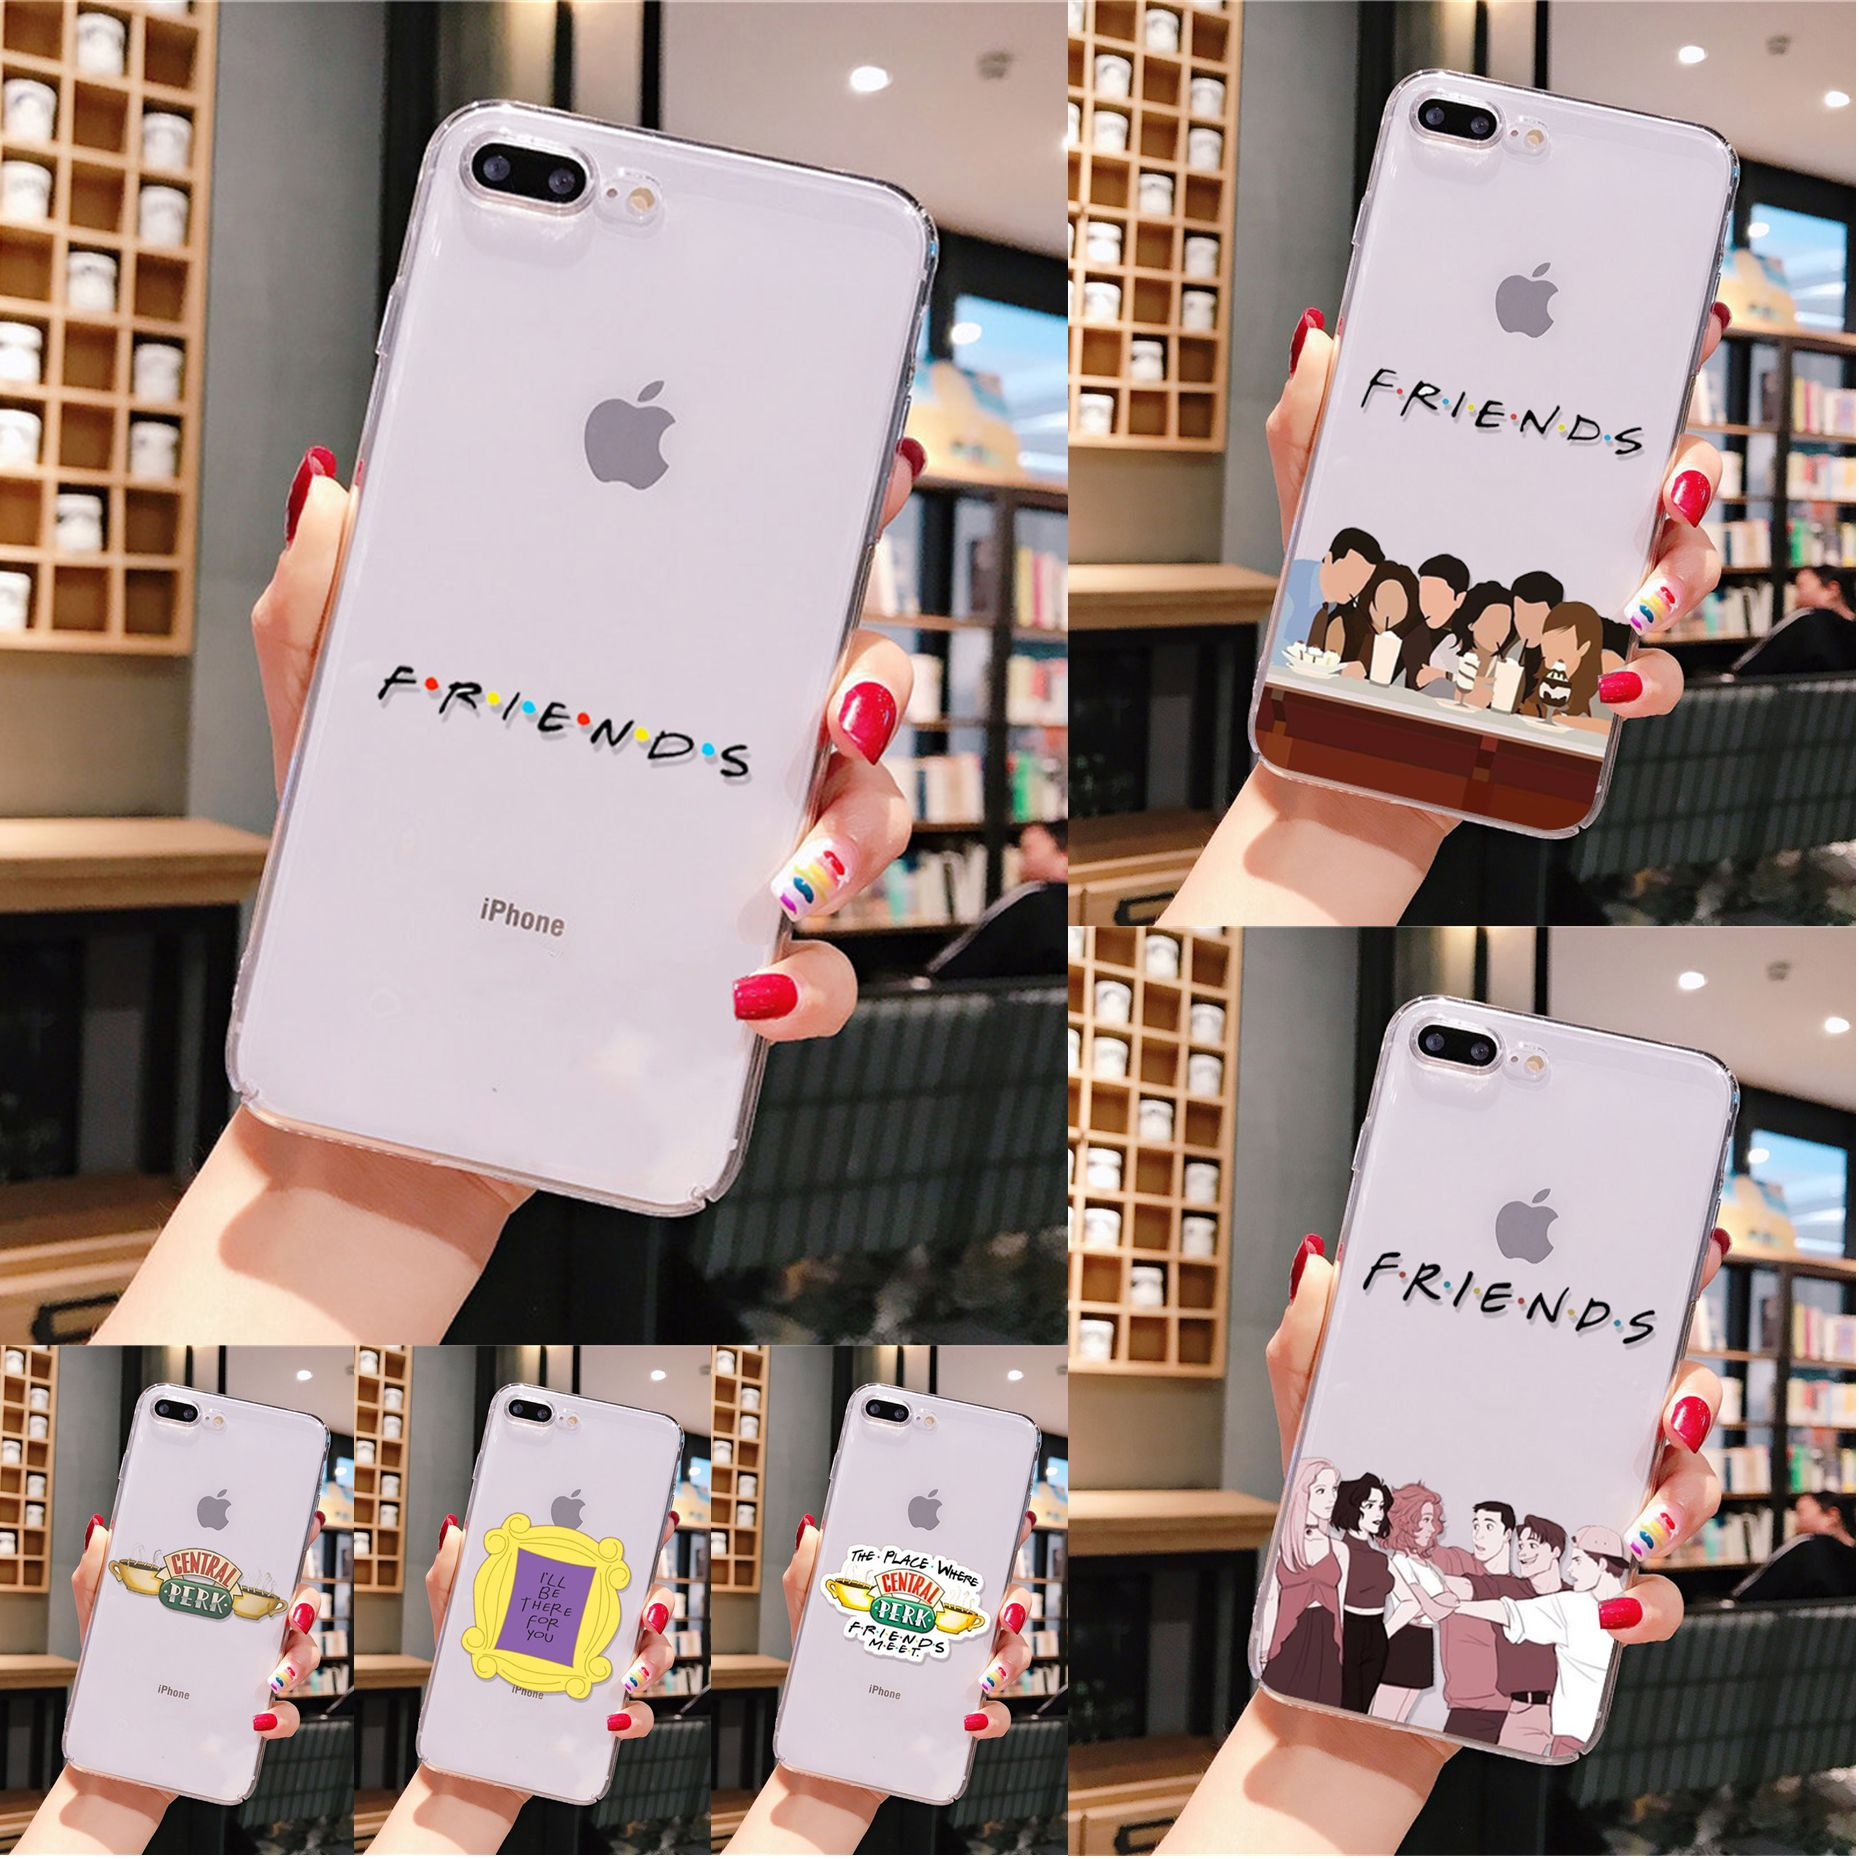 Babaite Friends Tv Smart Cover Transparent Soft Shell Phone Case For IPhone 6S 6plus 7 7plus 8 8Plus X Xs MAX 5 5S XR 11 Pro Max